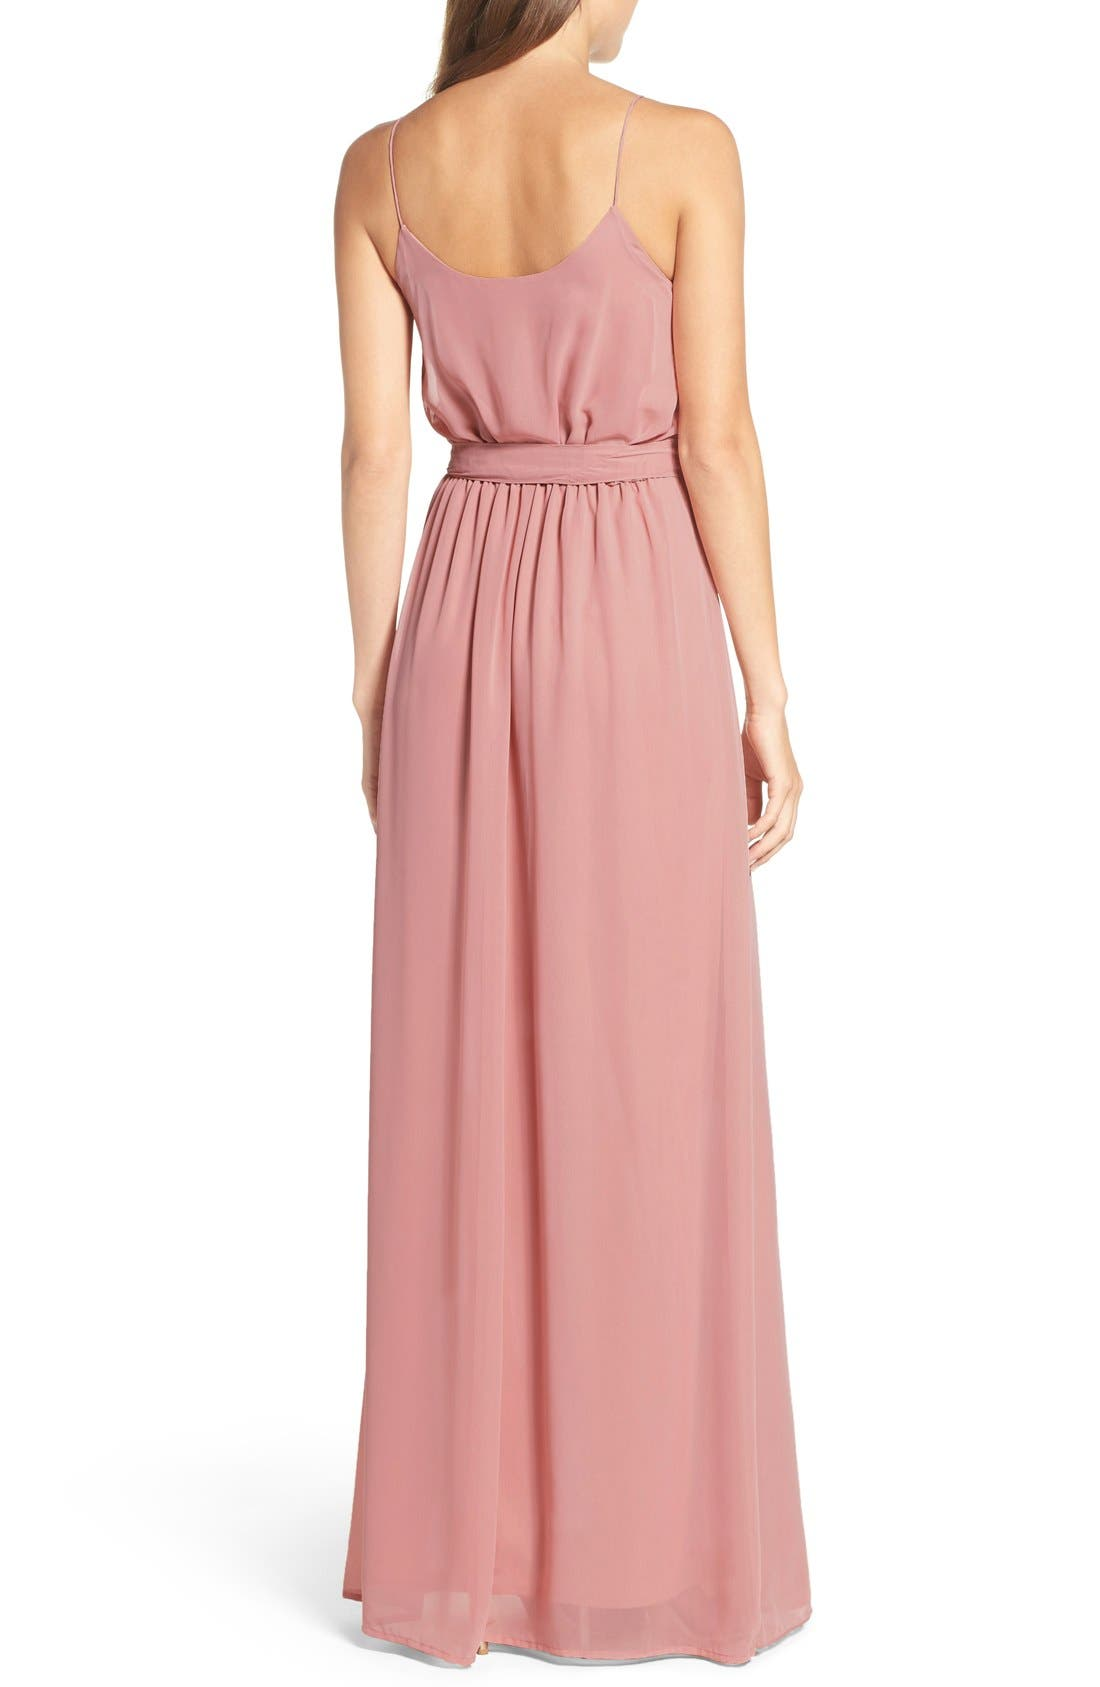 'Drew' Ruffle Front Chiffon Gown,                             Alternate thumbnail 26, color,